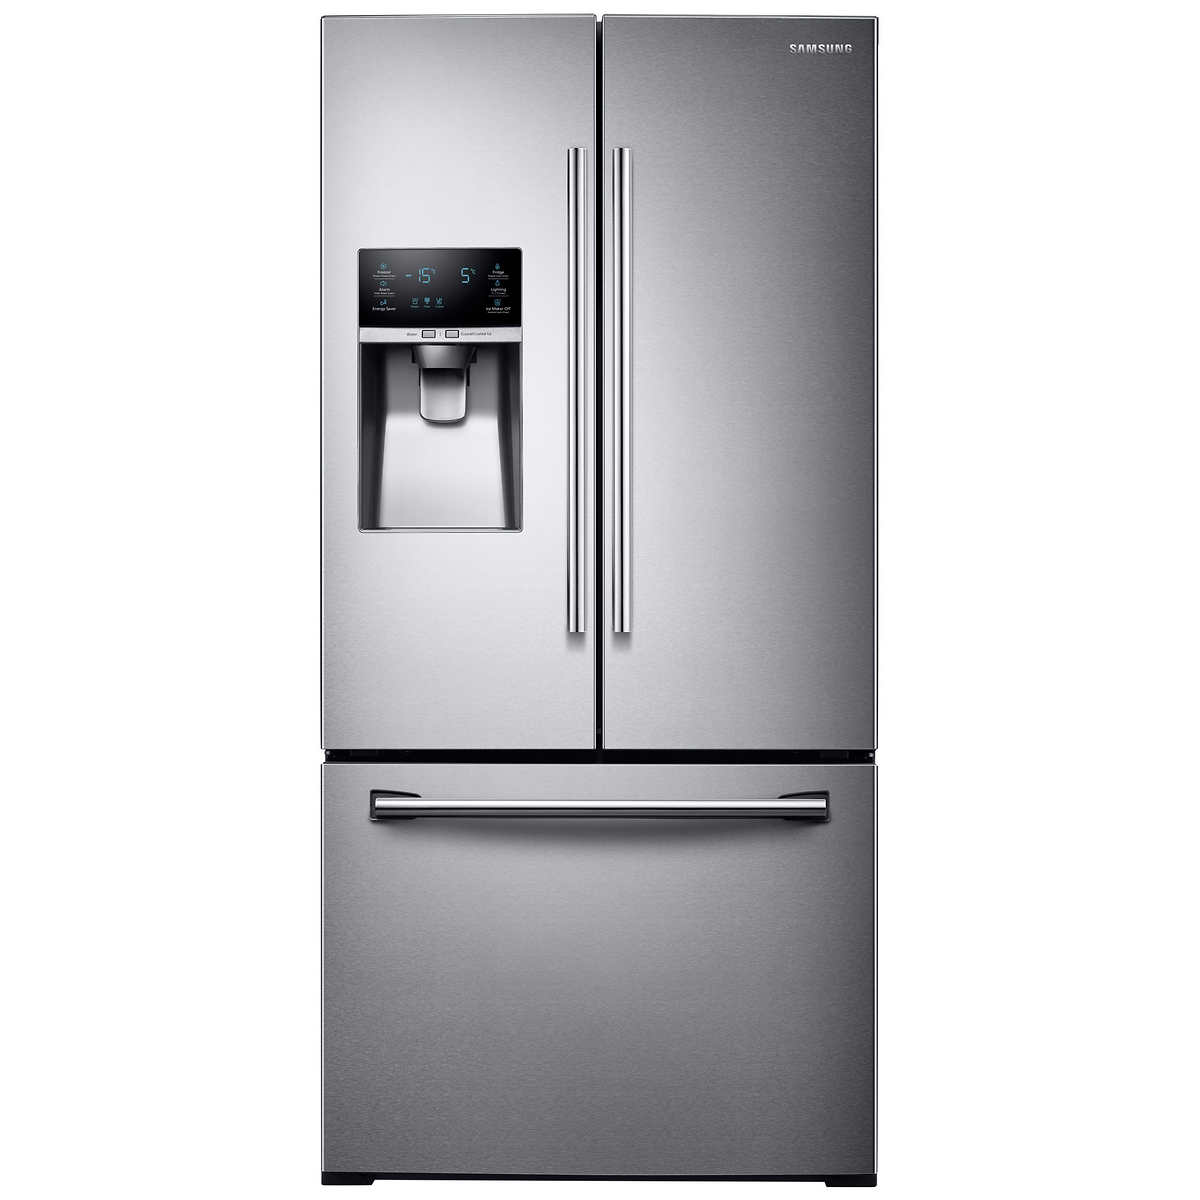 Samsung 26cuft 33 3 Door French Door Refrigerator With Coolselect Pantry In Stainless Steel